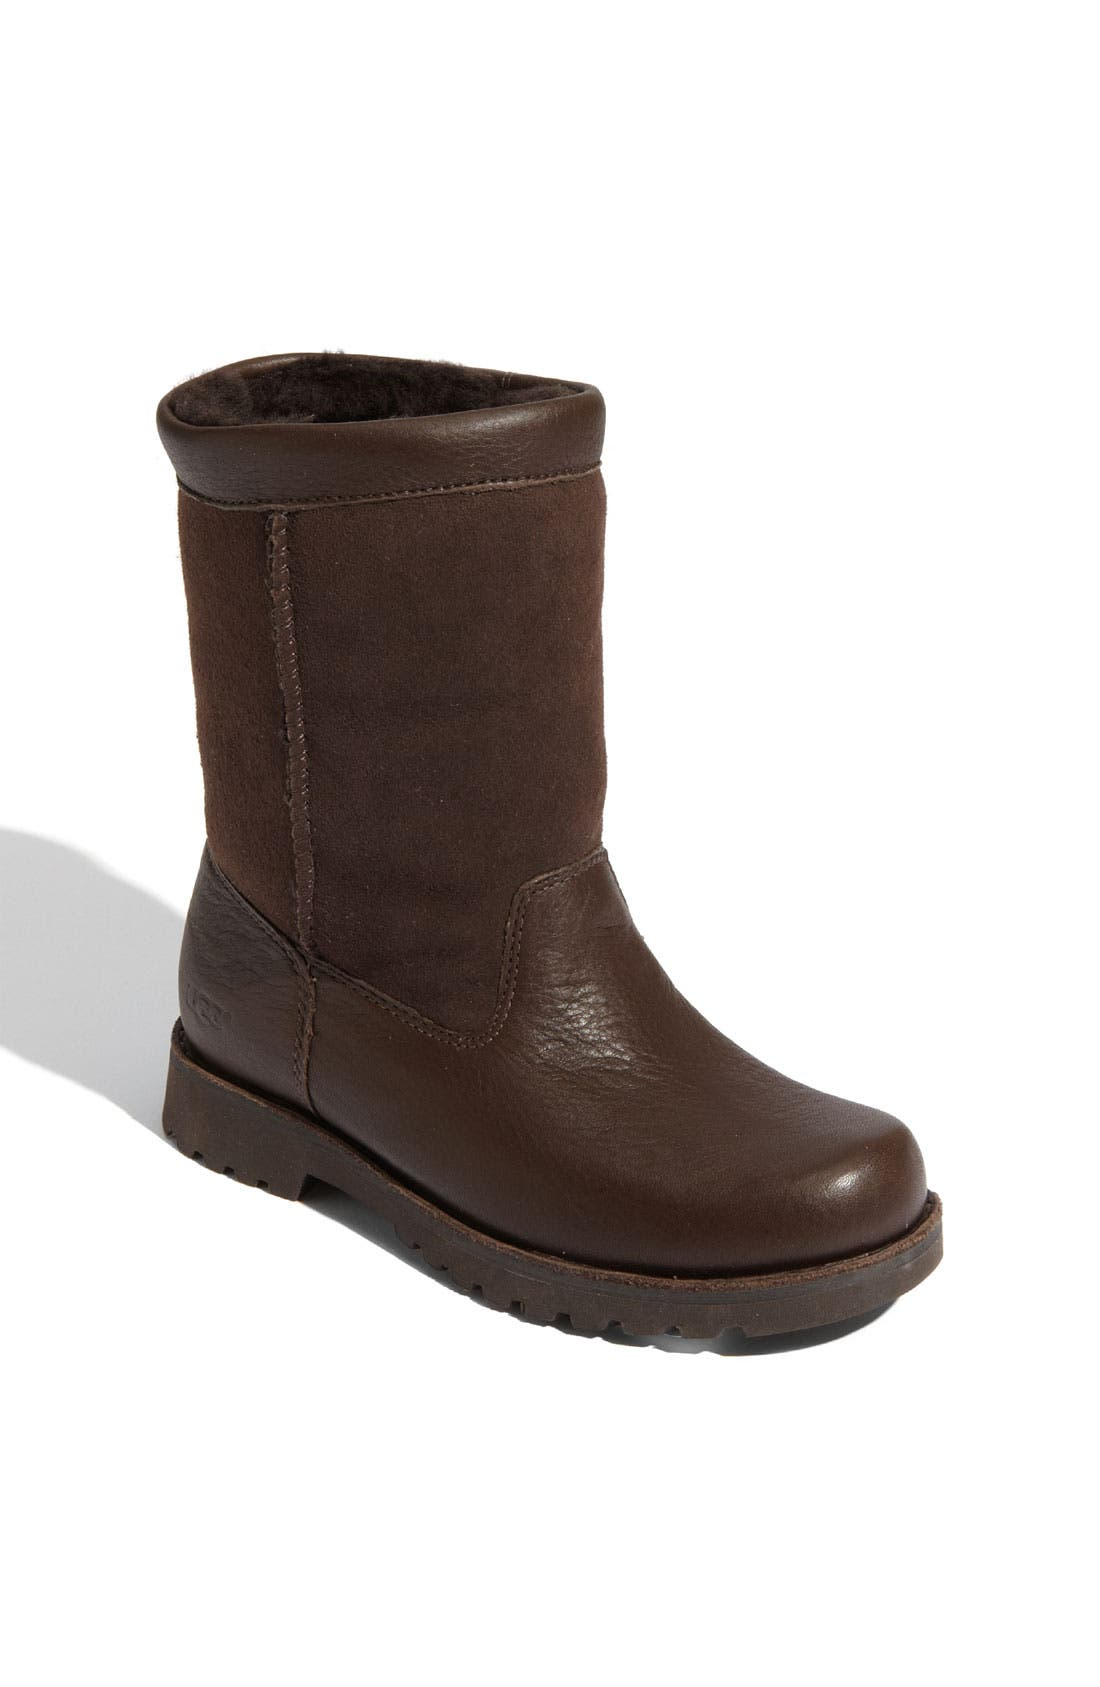 Main Image - UGG® 'Riverton' Boot (Toddler, Little Kid & Big Kid)